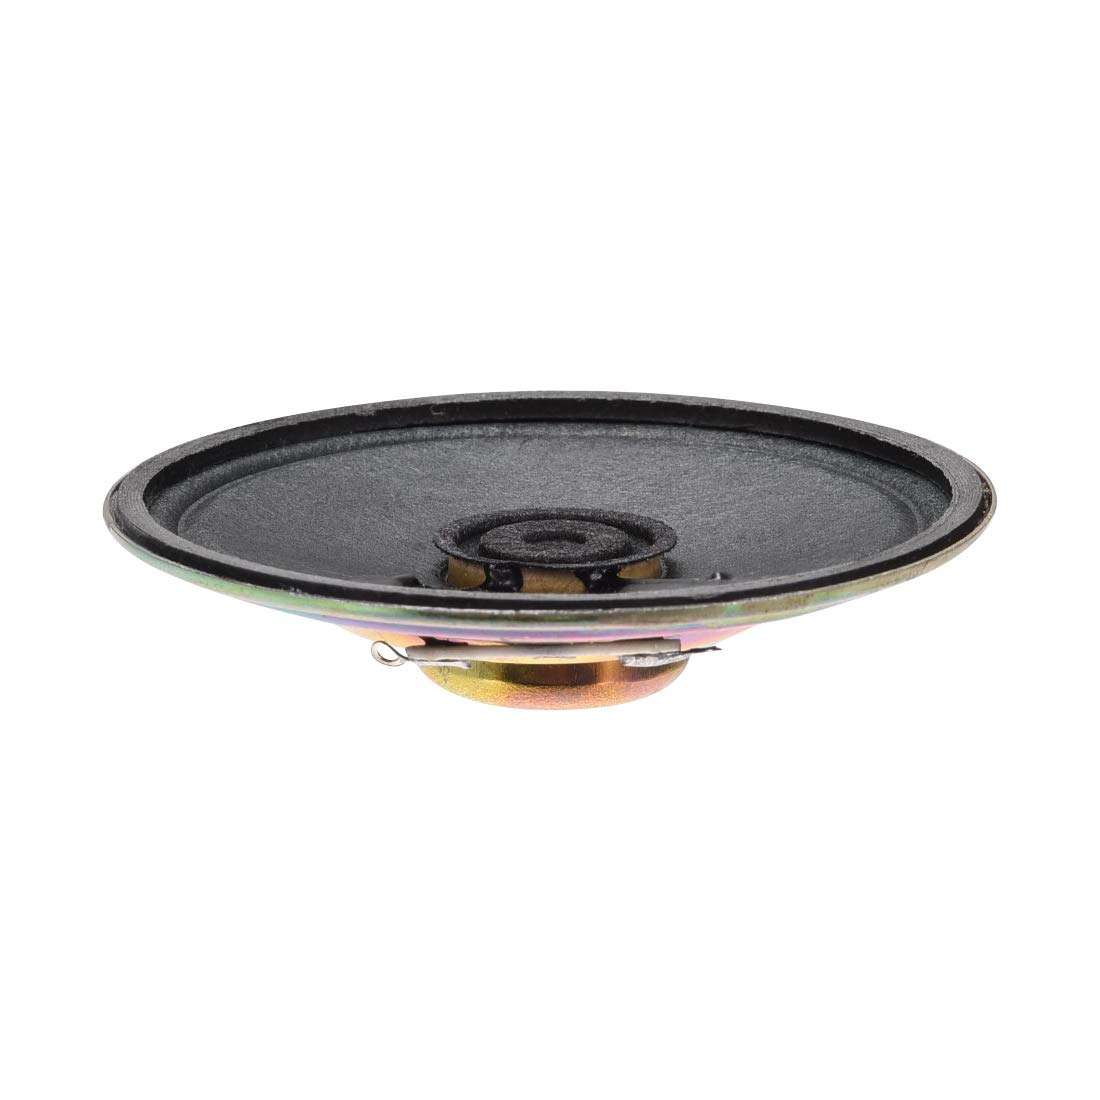 uxcell 0.5W 8 Ohm DIY Magnetic Speaker 57mm Round Shape Replacement Loudspeaker for